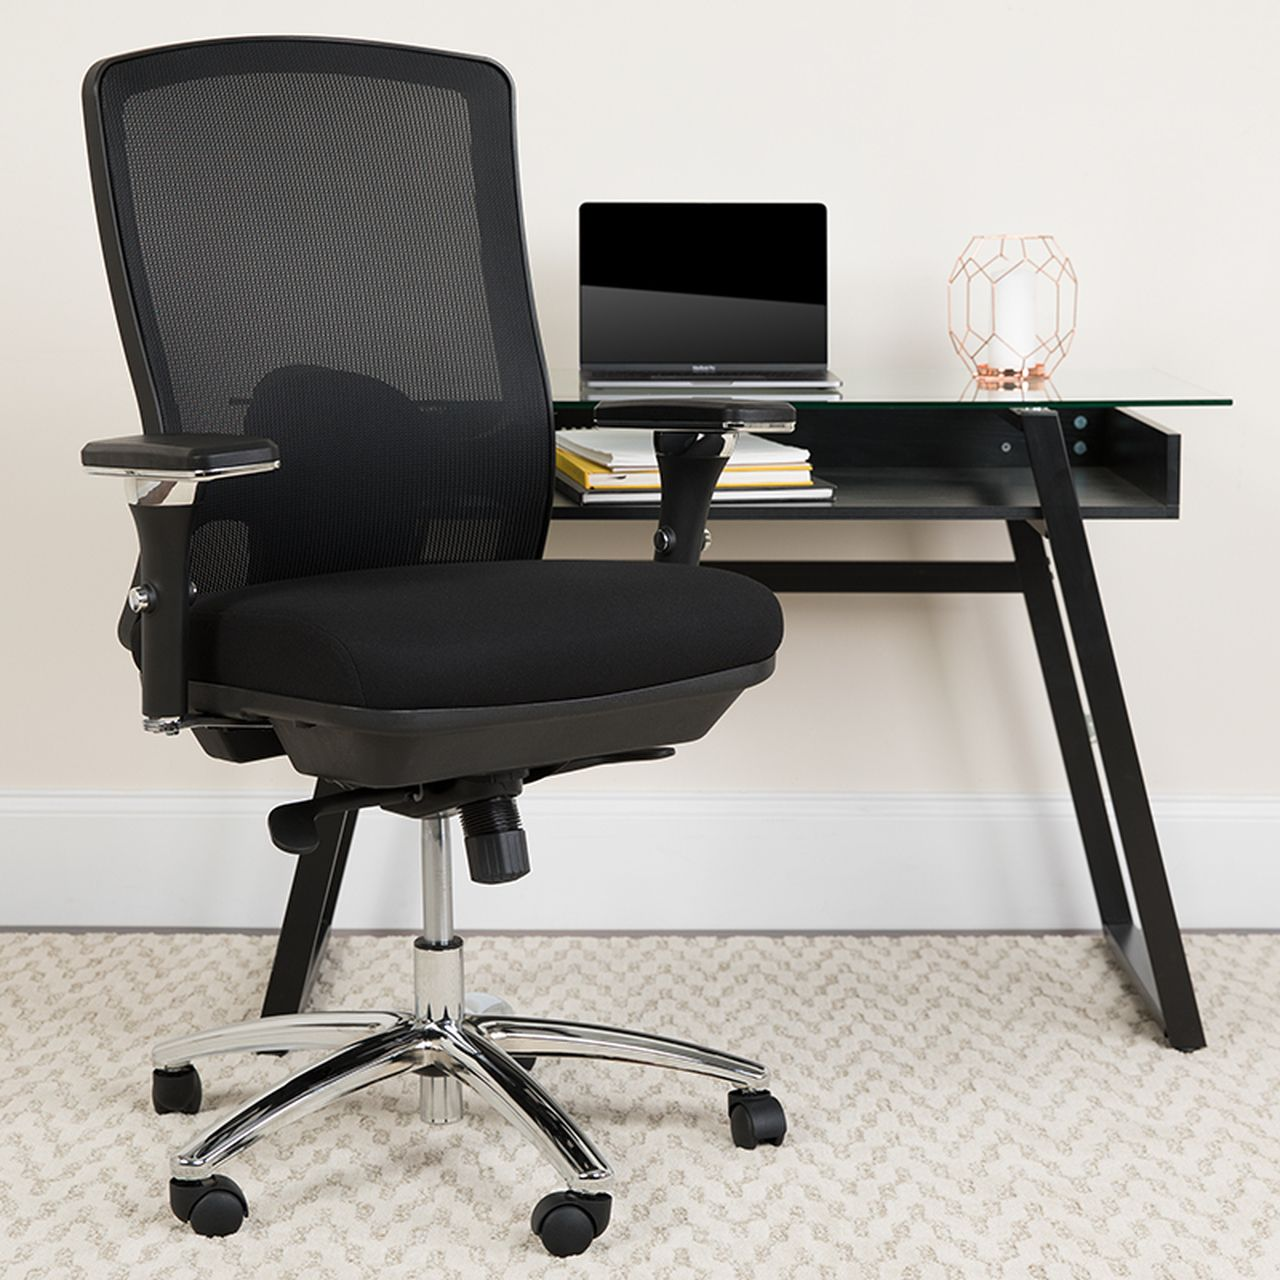 Comfortable Office Chairs 2020 In 2020 Furniture Flash Furniture Chair